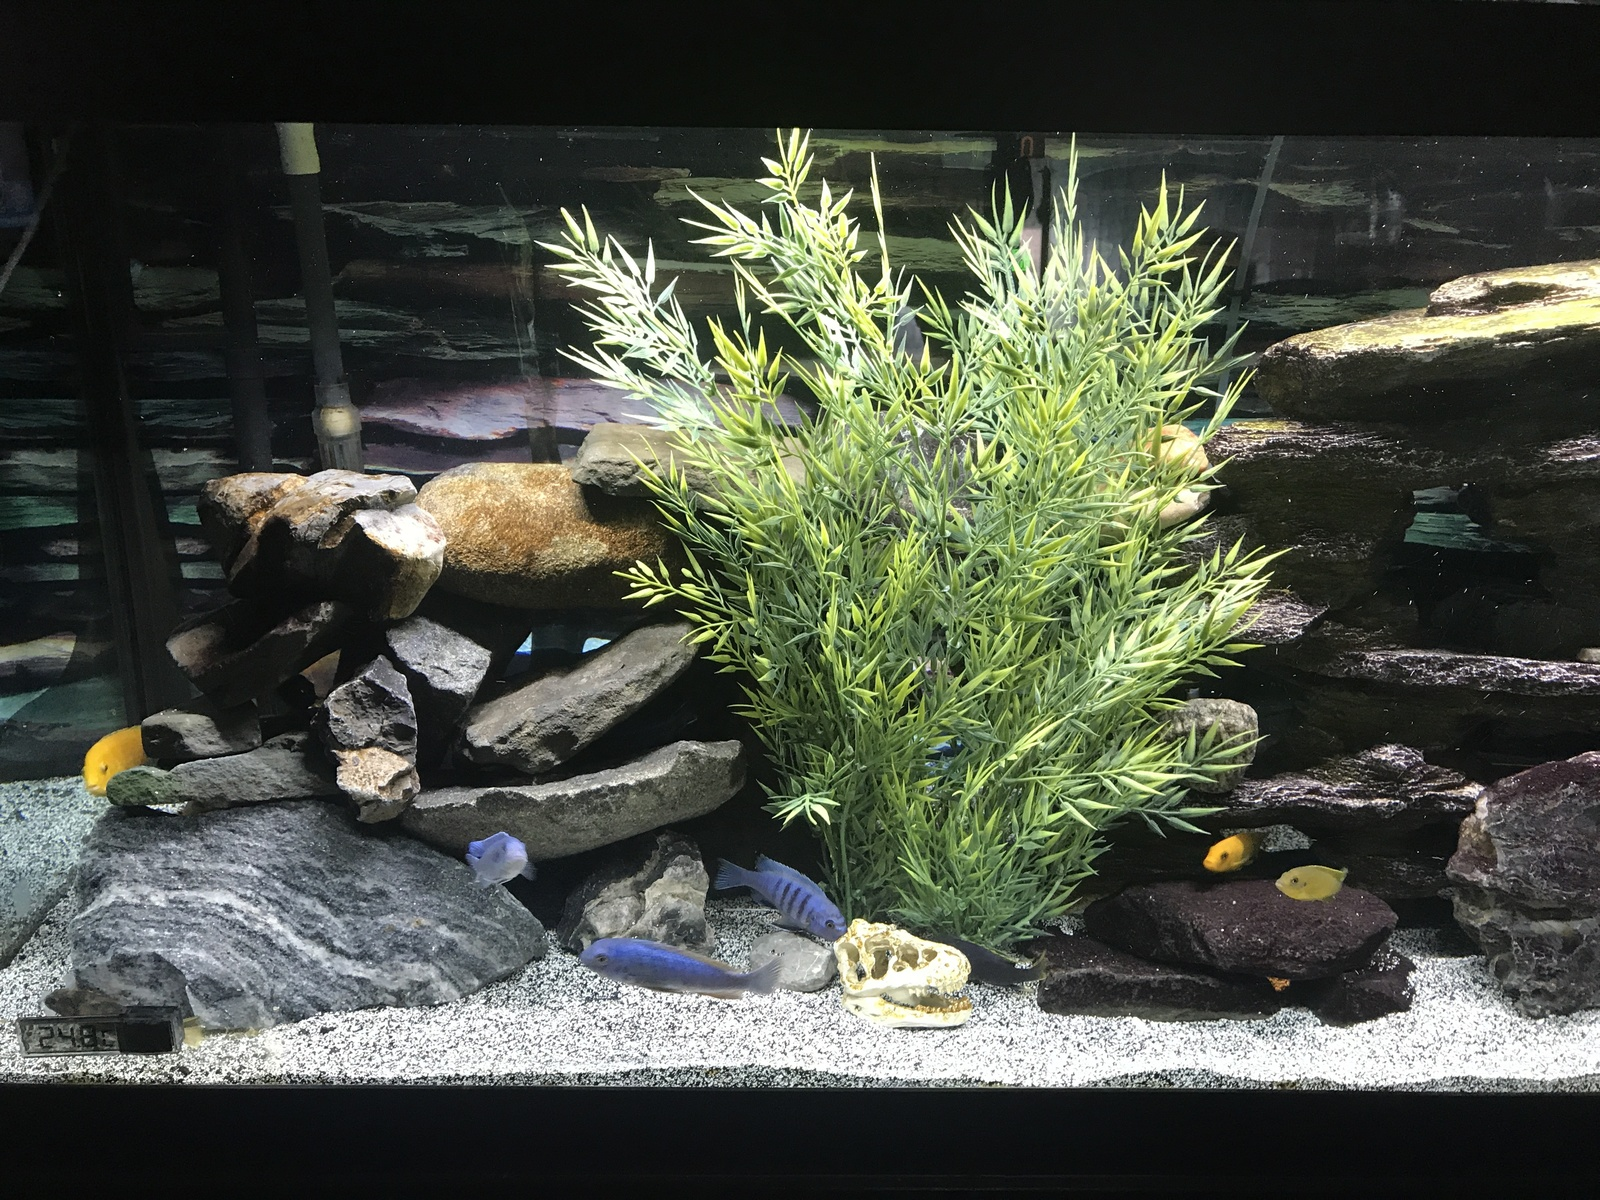 My new plant elite cichlids  | by chris luciano